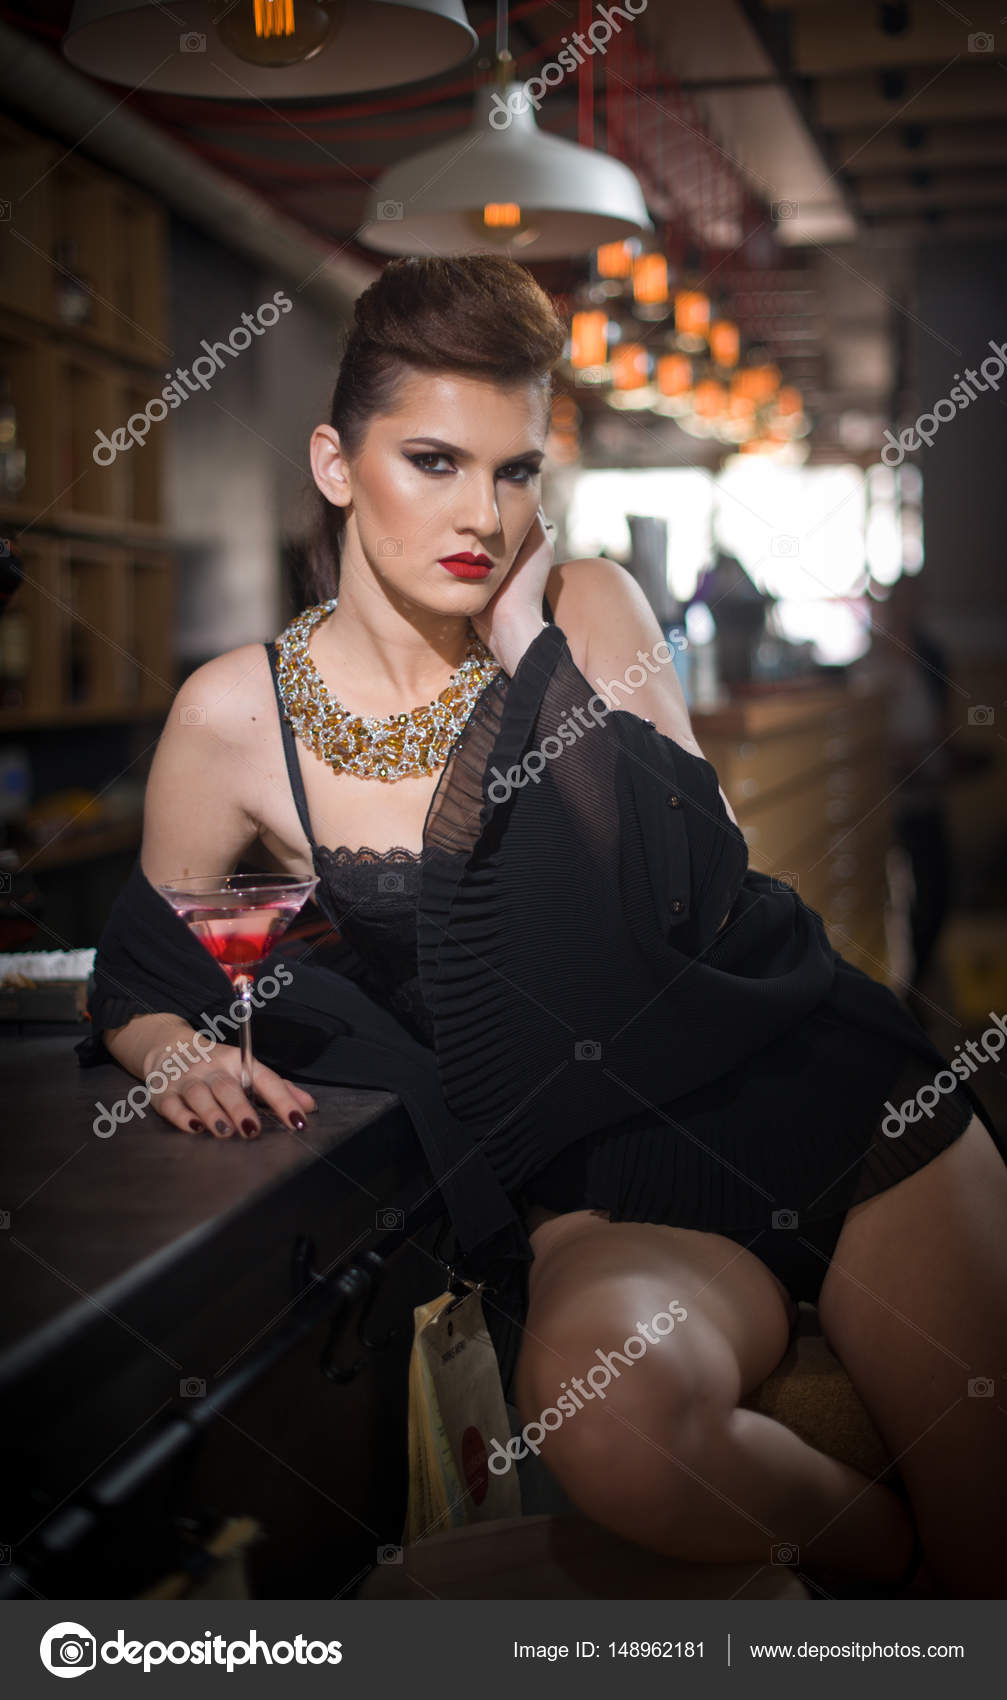 Sensual girl with long legs and high heels sitting on the chair in bar drinking .Handsome girl wearing beautiful body and high heels in indoor scene.  sc 1 st  Depositphotos & Sensual girl with long legs and high heels sitting on the chair in ...